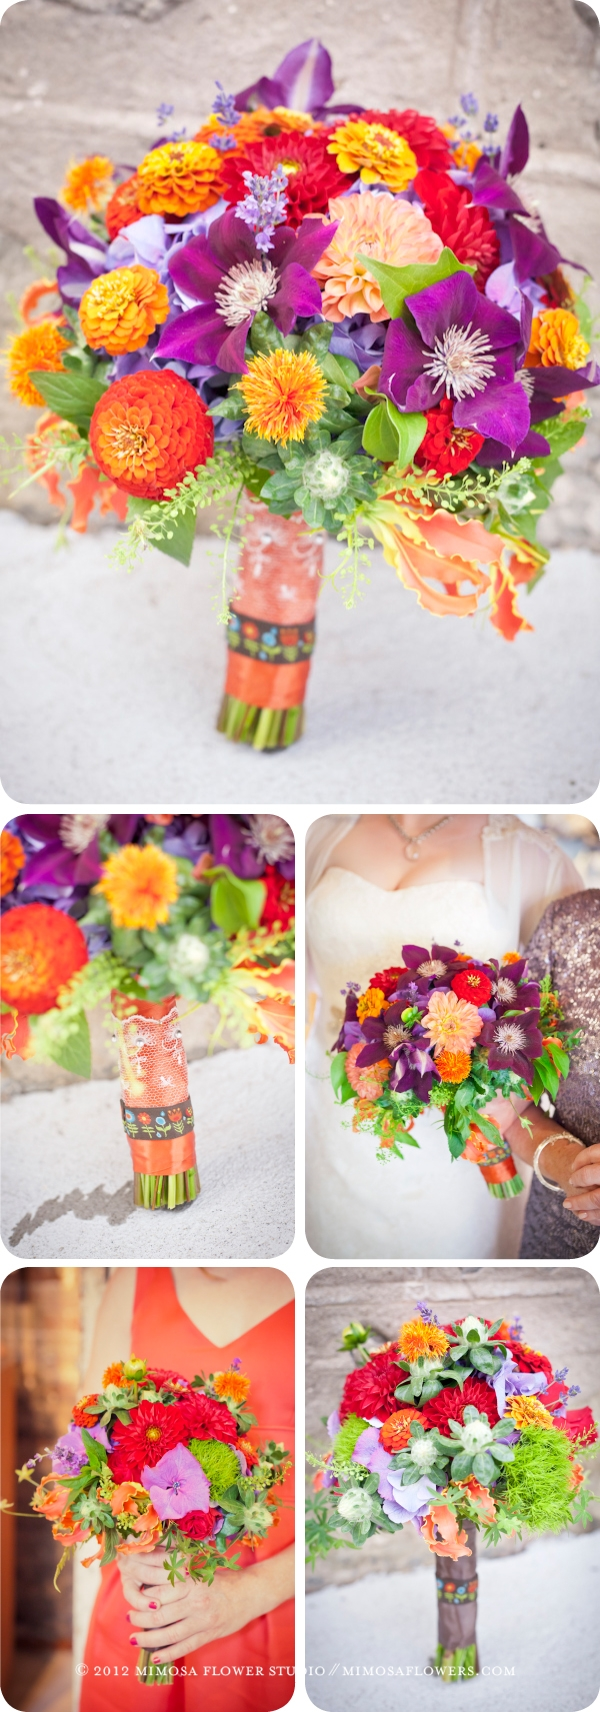 Spring Harvest Bride and Bridesmaid Bouquets in Tangerine, red, purple and yellow